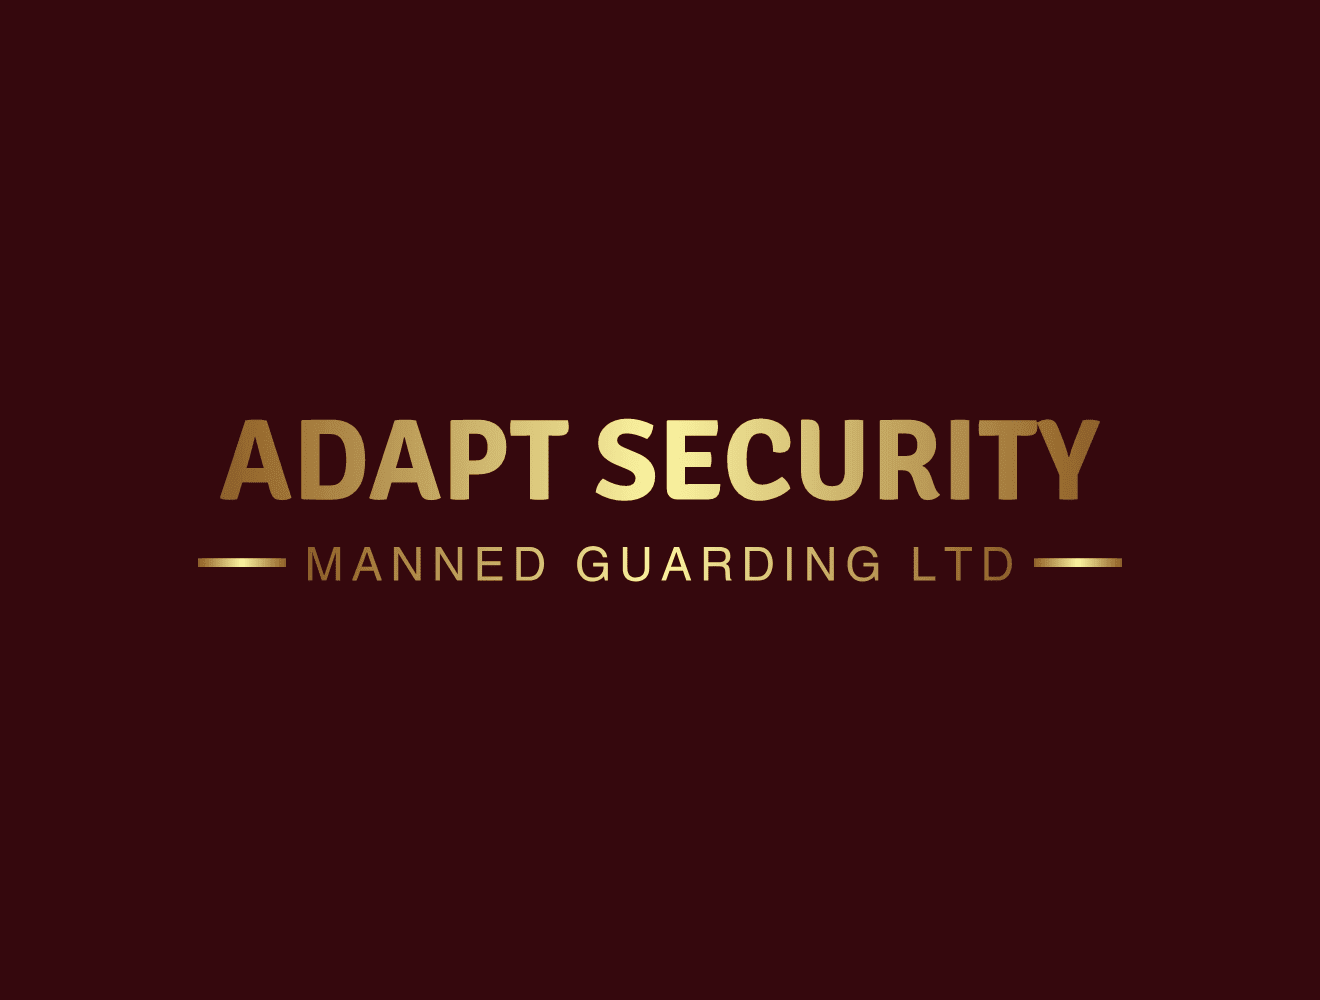 Adapt Security Manned Guarding Ltd, England, Scotland, Wales, UK,